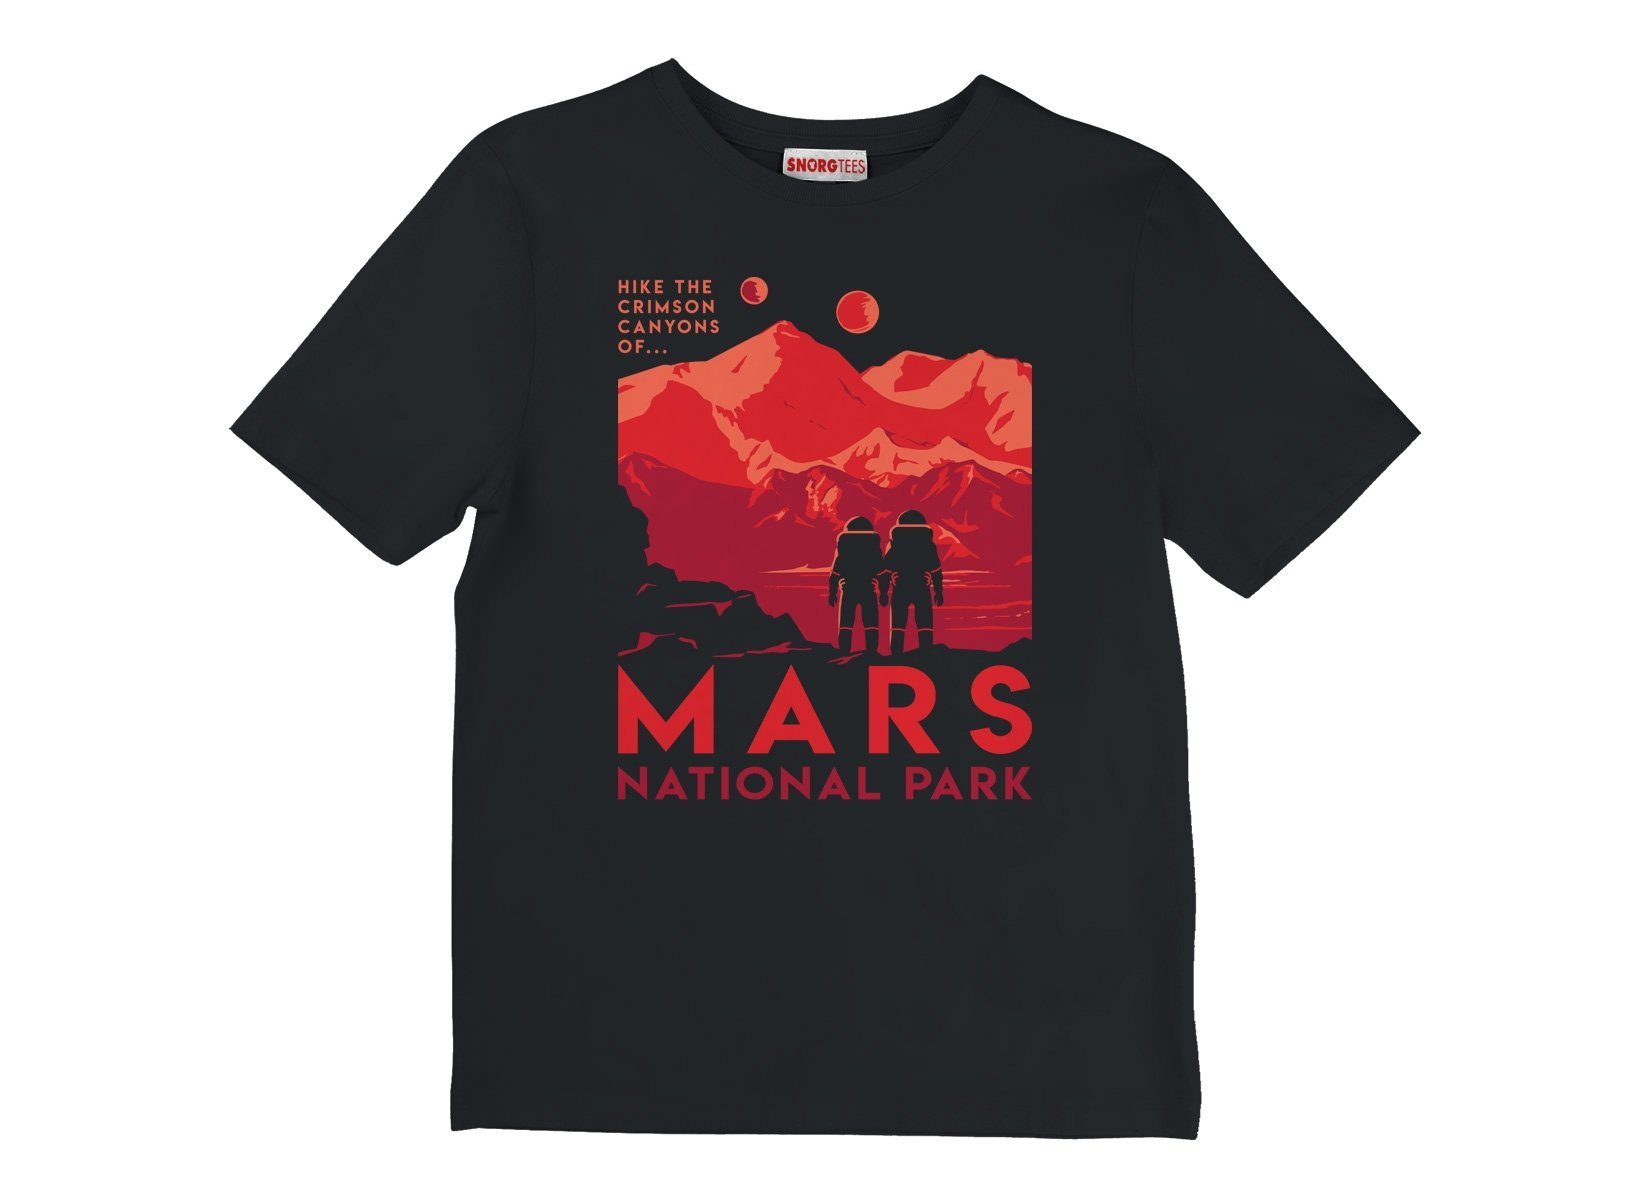 Mars National Park on Kids T-Shirt